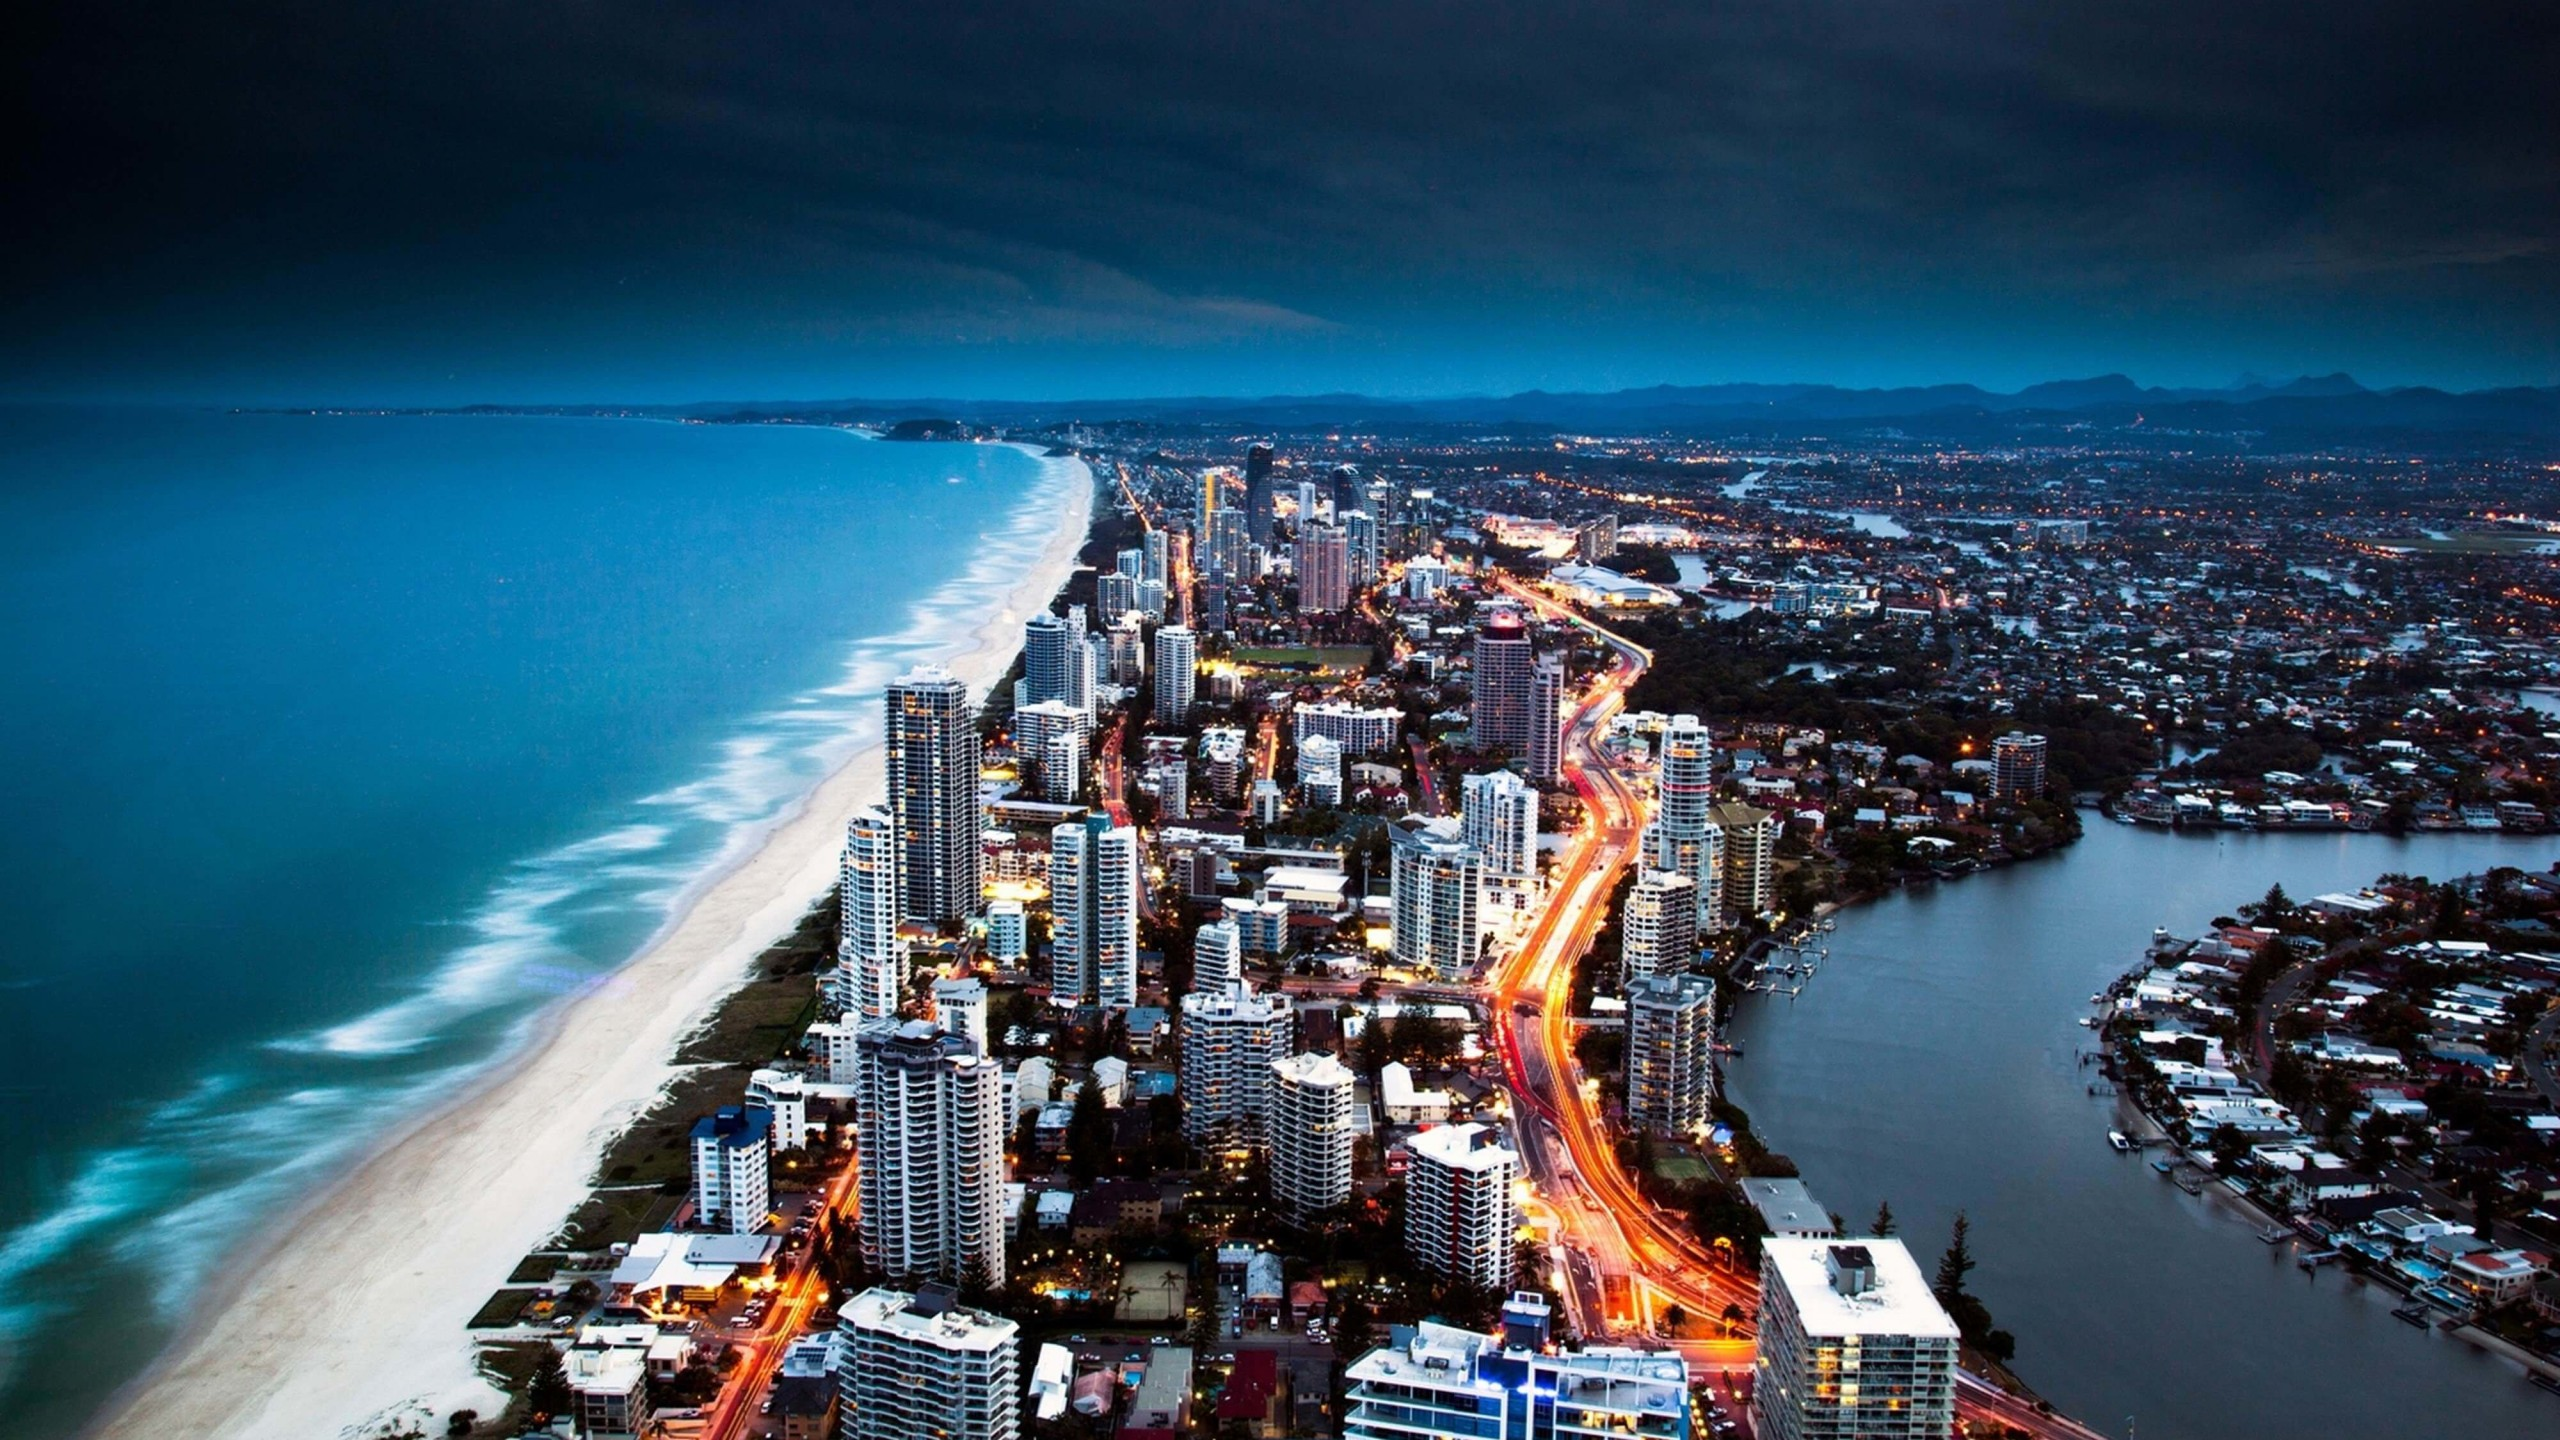 Gold Coast City in Queensland, Australia Wallpaper for Social Media YouTube Channel Art